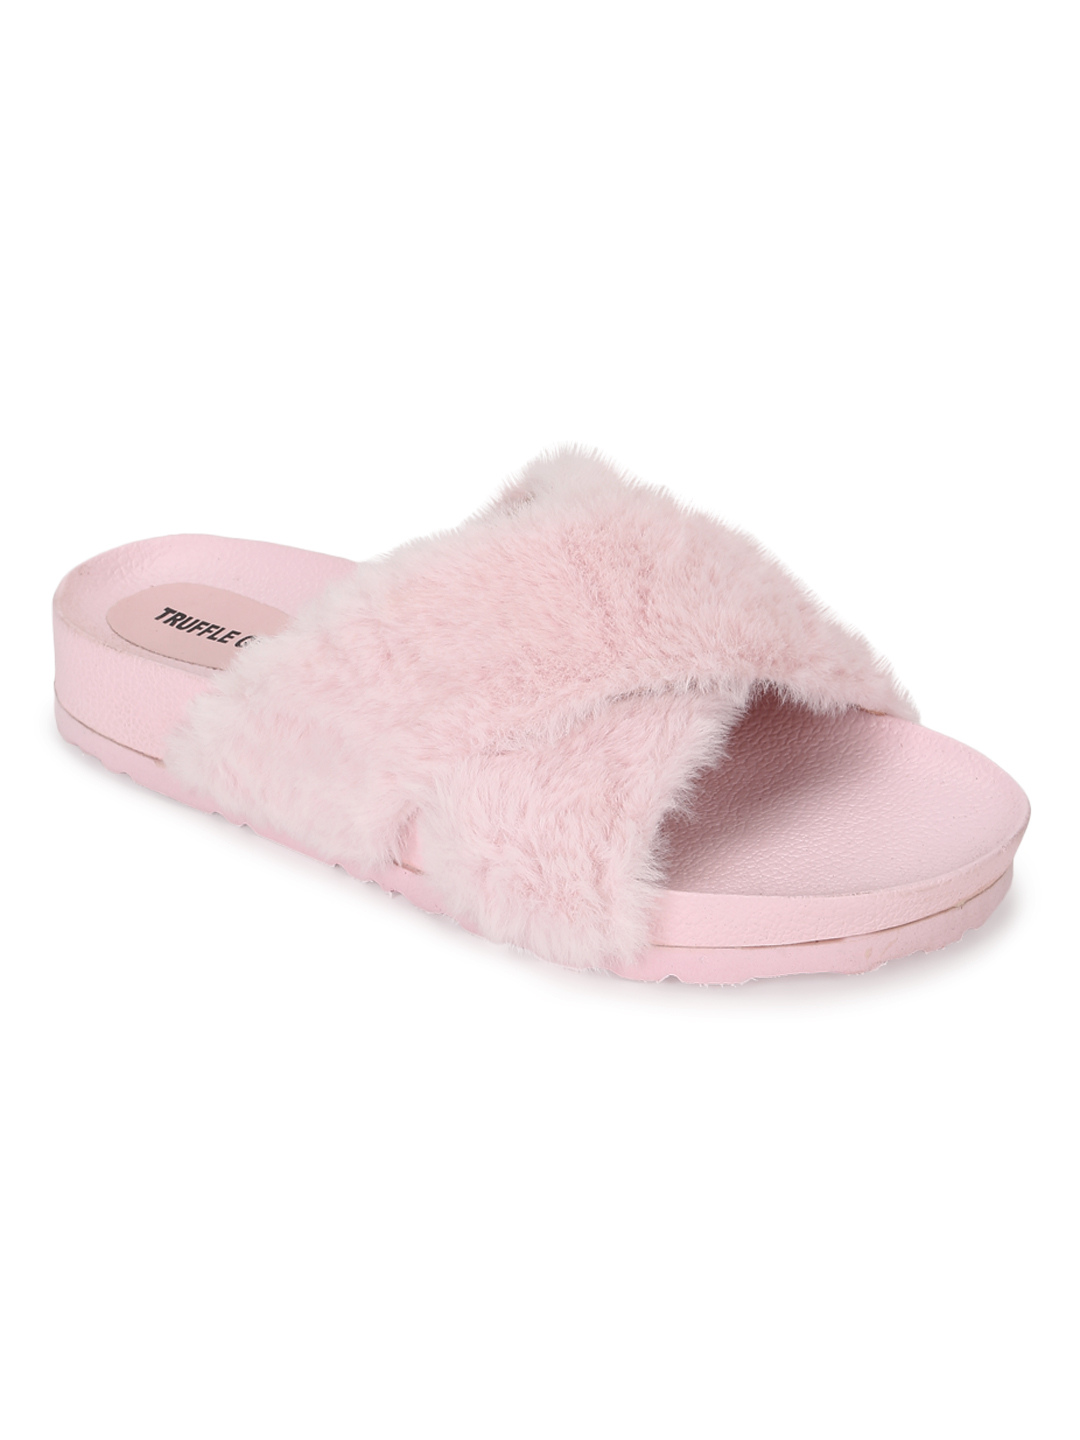 Truffle Collection | Truffle Collection Pink Fuzzy Fur Slides